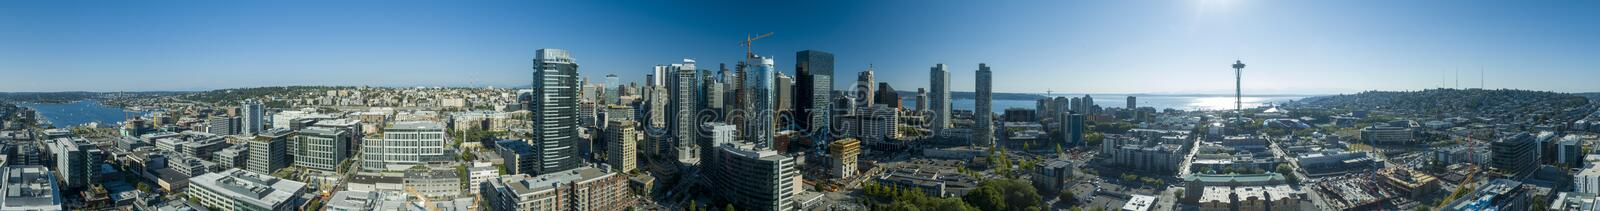 Seattle, Washington USA Downtown Skyline 360 View. Seattle, Washington USA Downtown Skyline - Panoramic Landscape Sunny Summer Day - 360 View stock photos